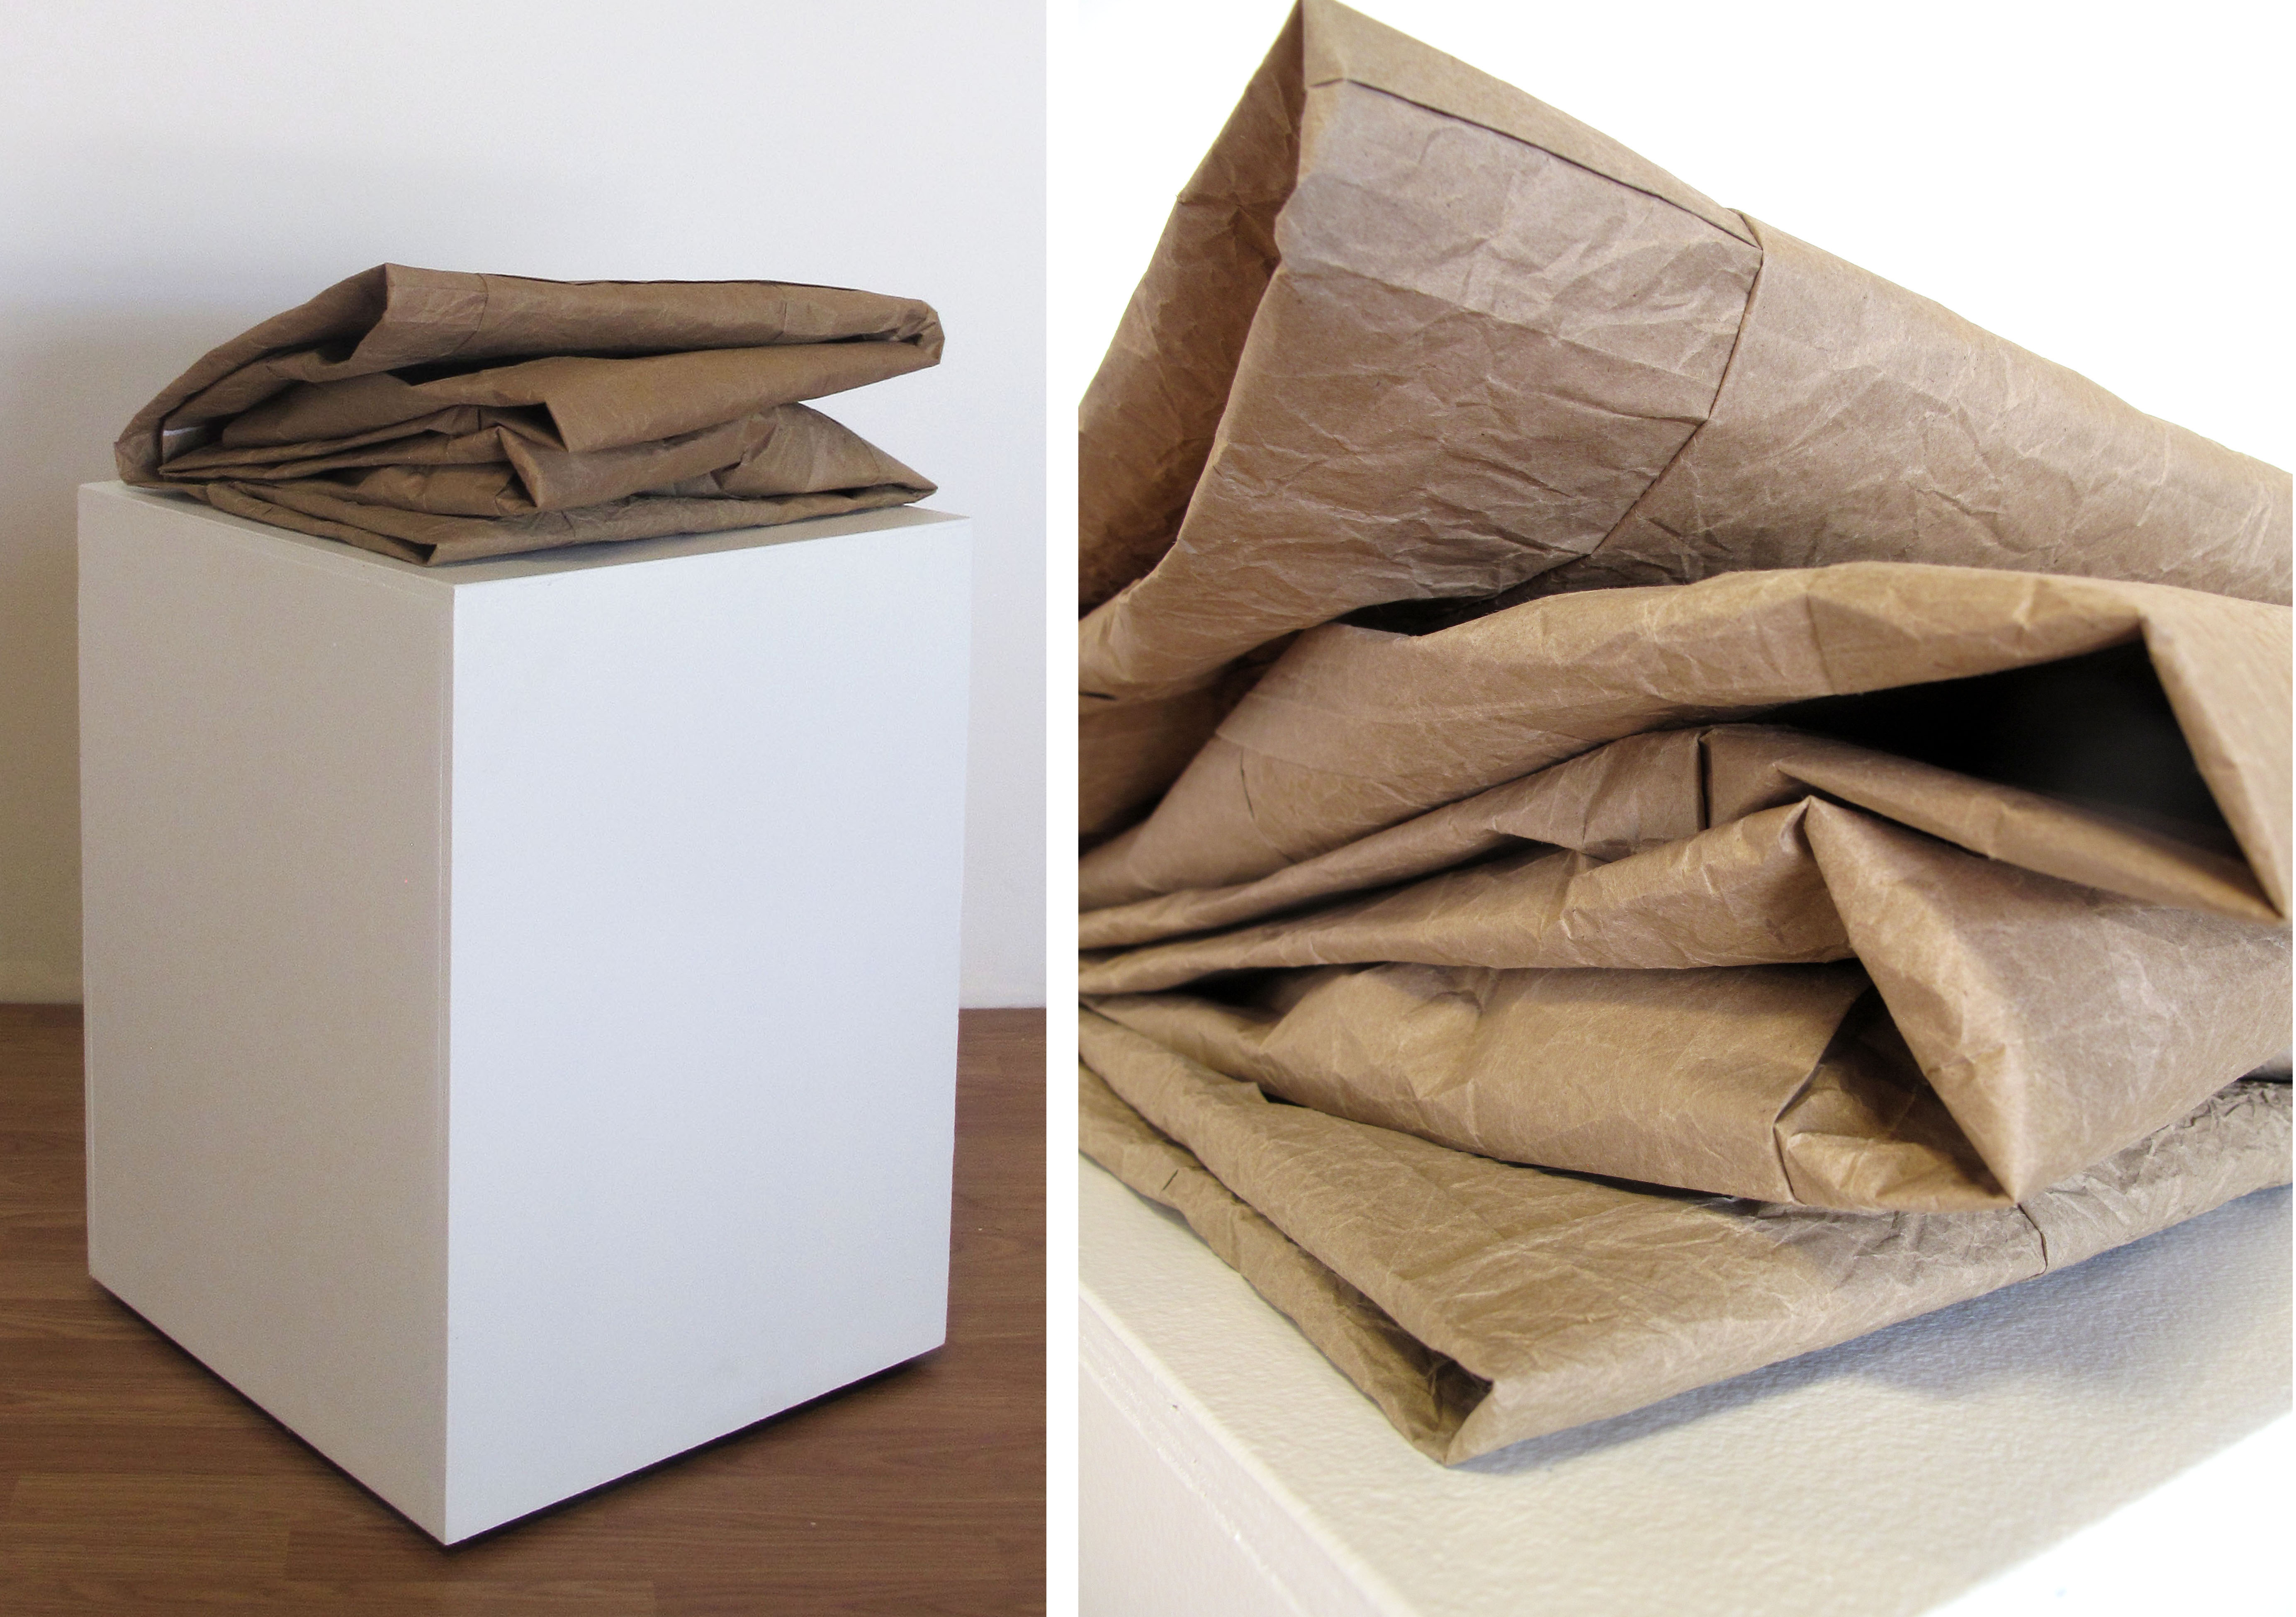 Quilt Top, 2014 (Brown paper bags)